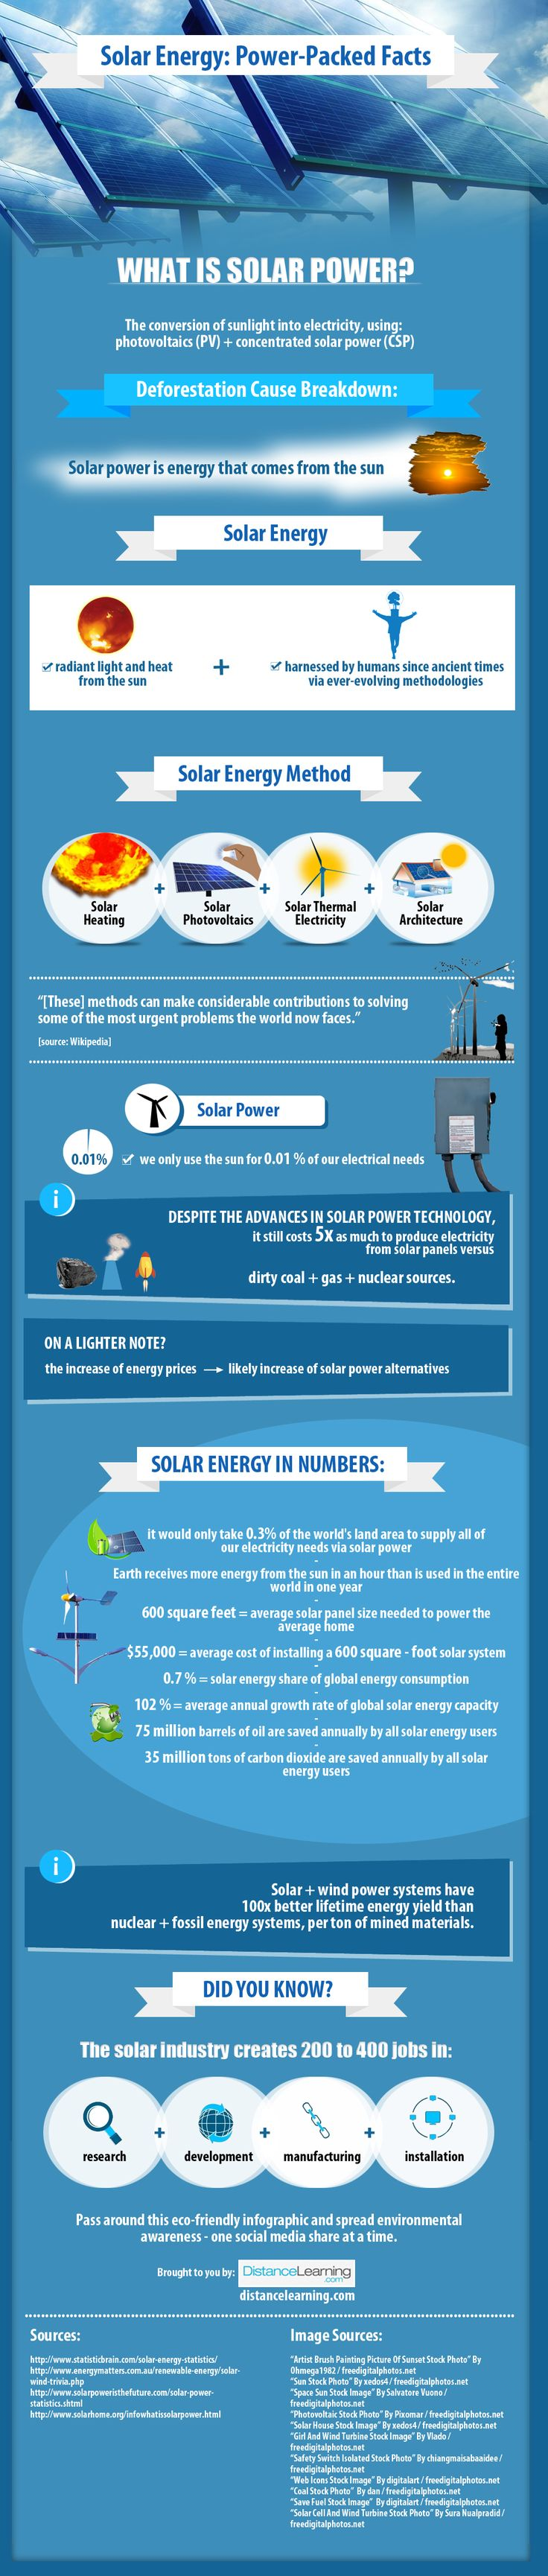 http://www.distancelearning.com/resources/solar-power-infographic/  Solar Energy: Power-Packed Facts [Infographic]